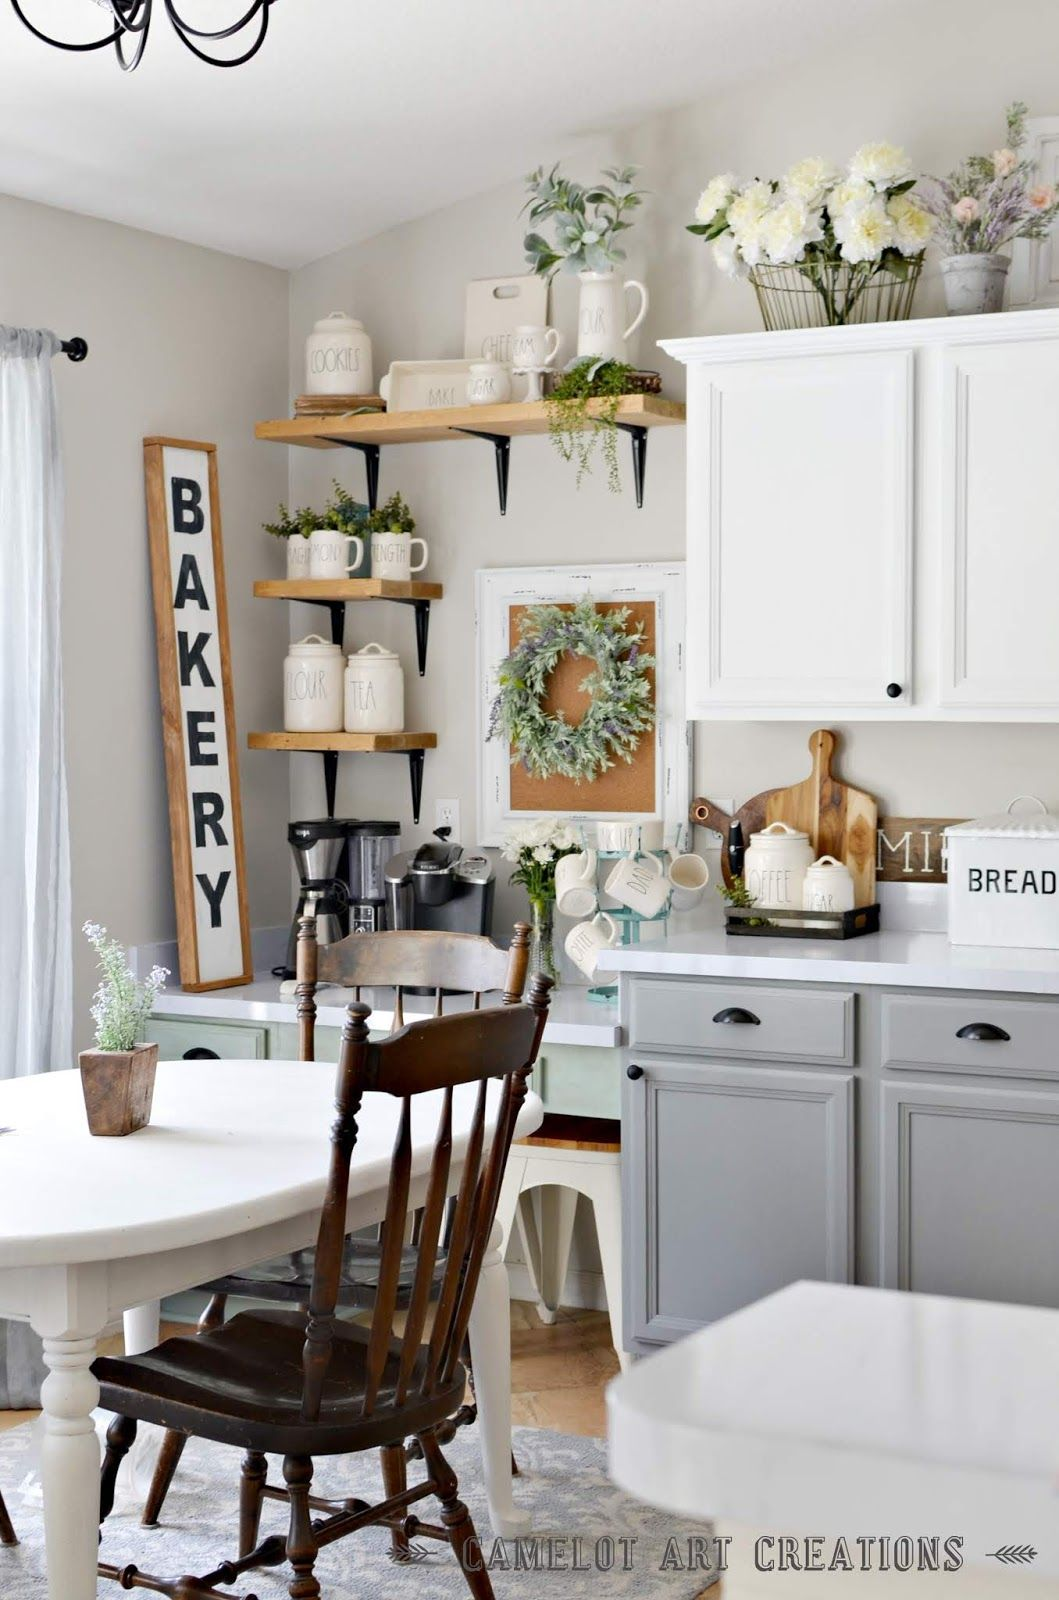 Camelot art creations 5 tips to creating a farmhouse kitchen